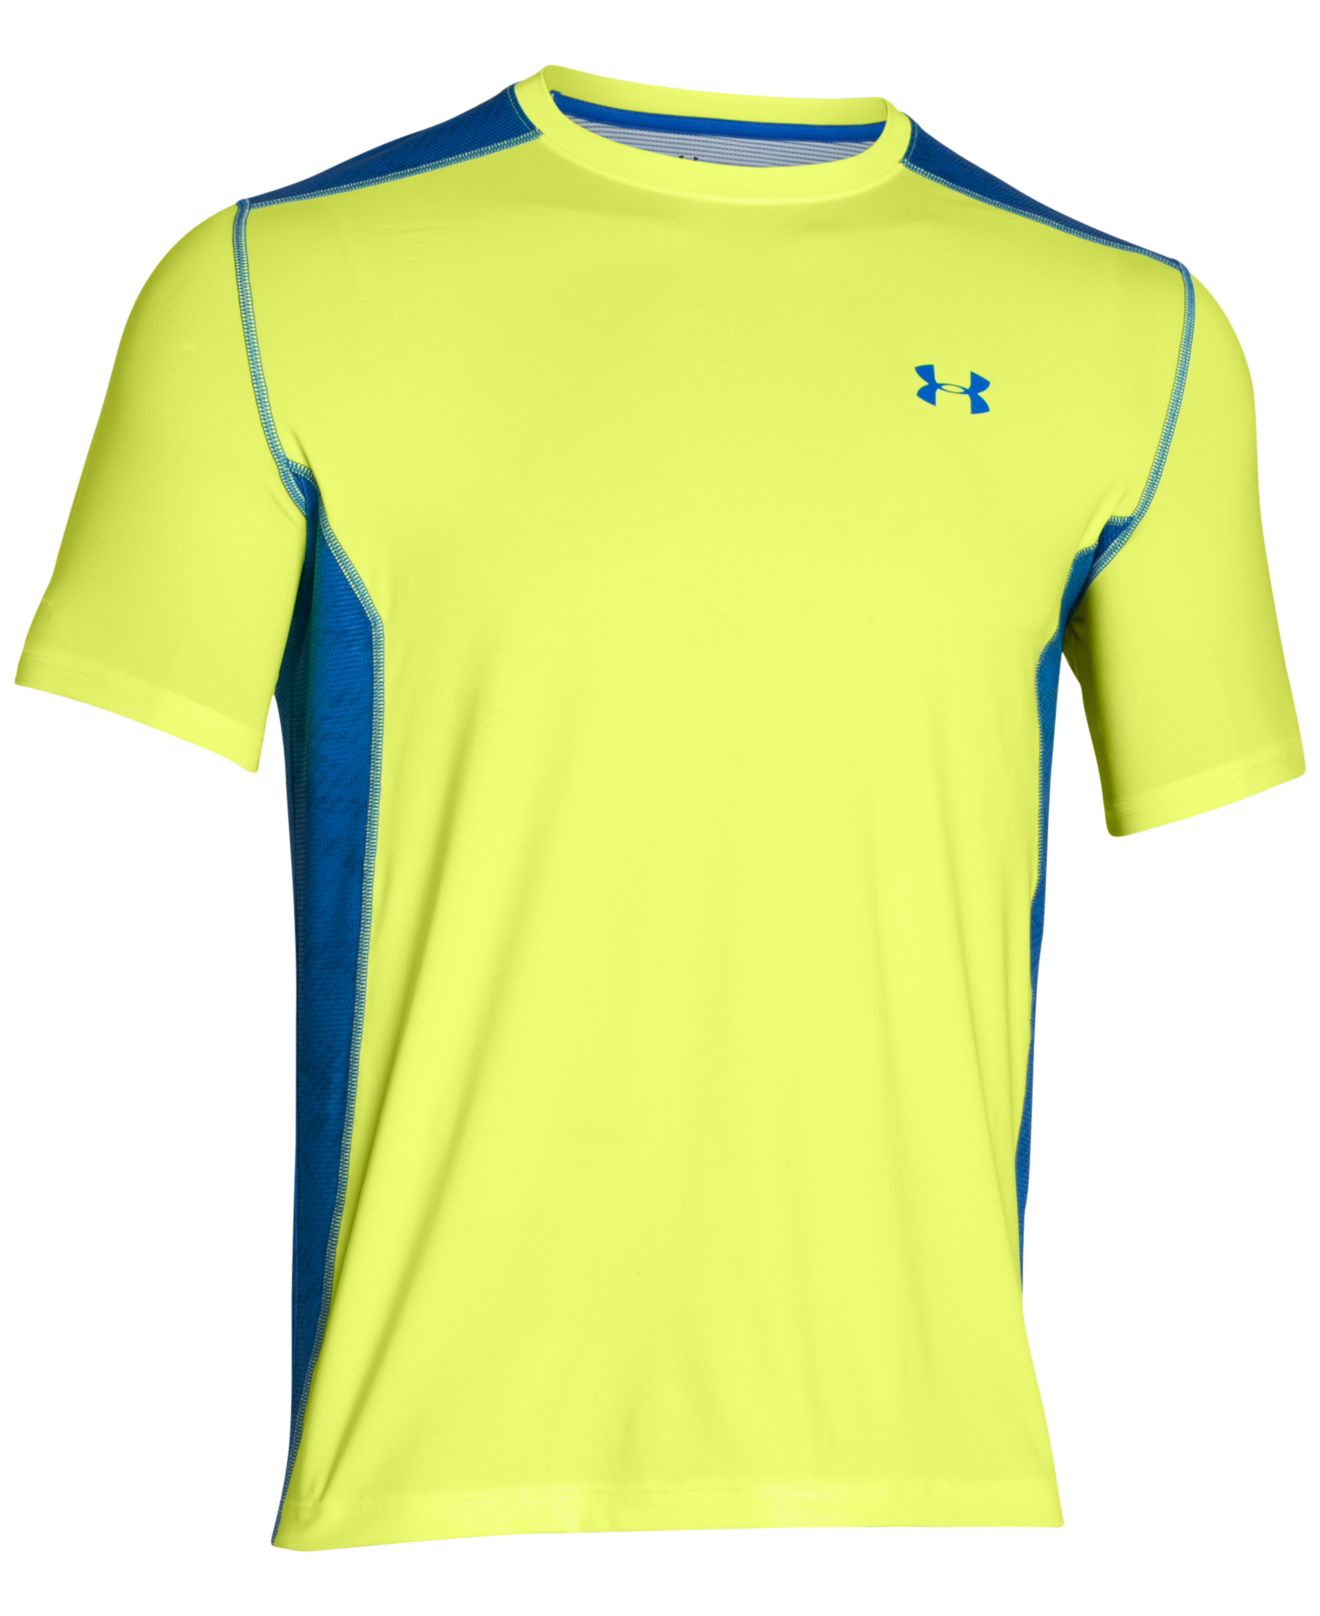 lyst under armour men 39 s heatgear raid t shirt in blue. Black Bedroom Furniture Sets. Home Design Ideas